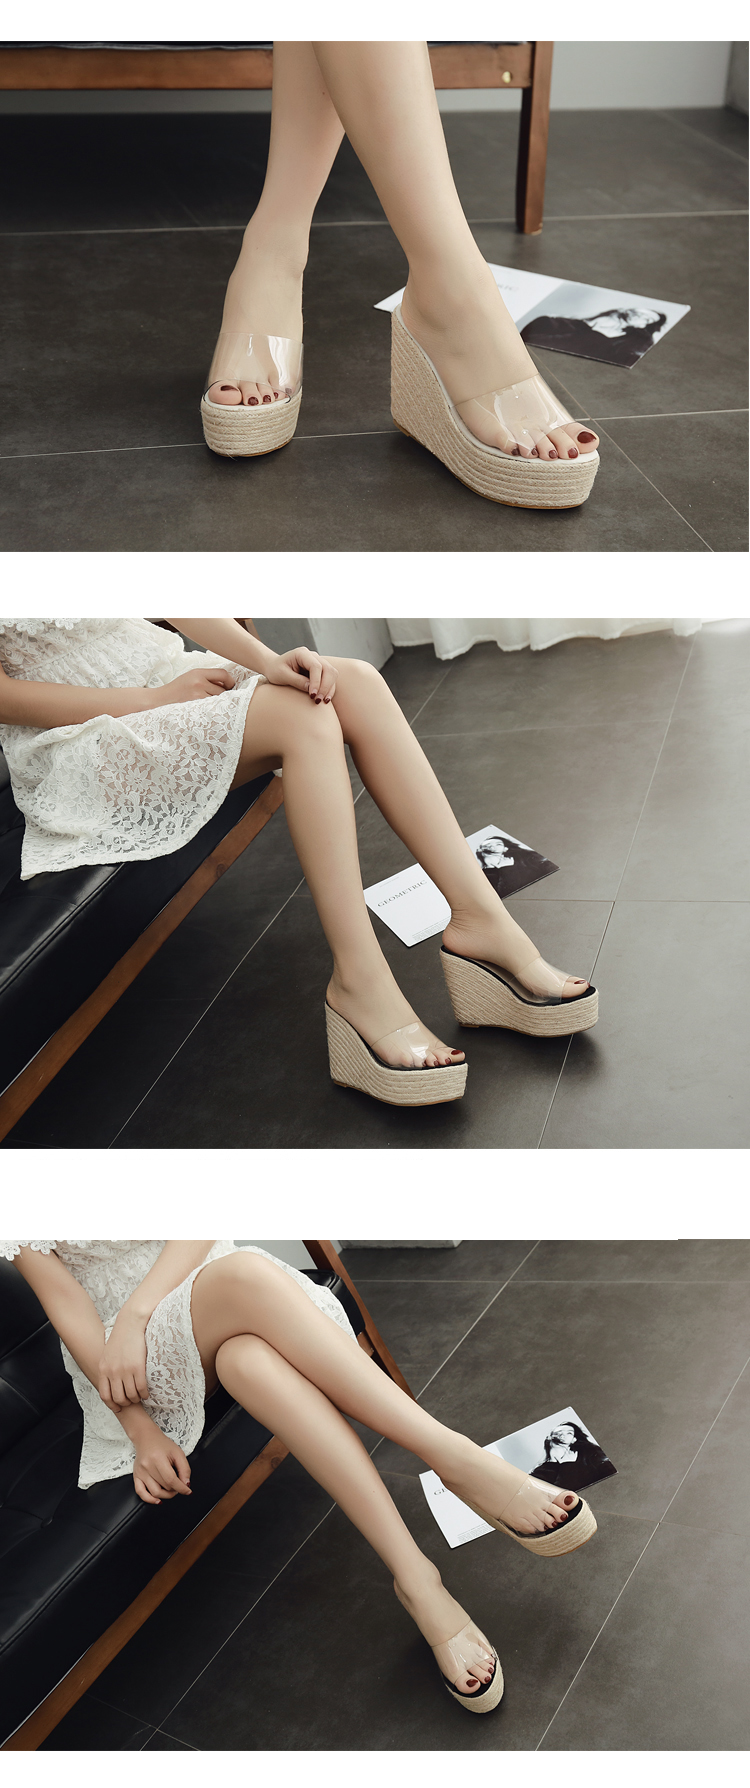 HTB1Sj7inf9TBuNjy0Fcq6zeiFXa3 Eilyken 2019 New Summer PVC Jelly Sandals slippers Shoes Casual Sexy Wedges 11.5CM Women's Sandals slippers size 34-40